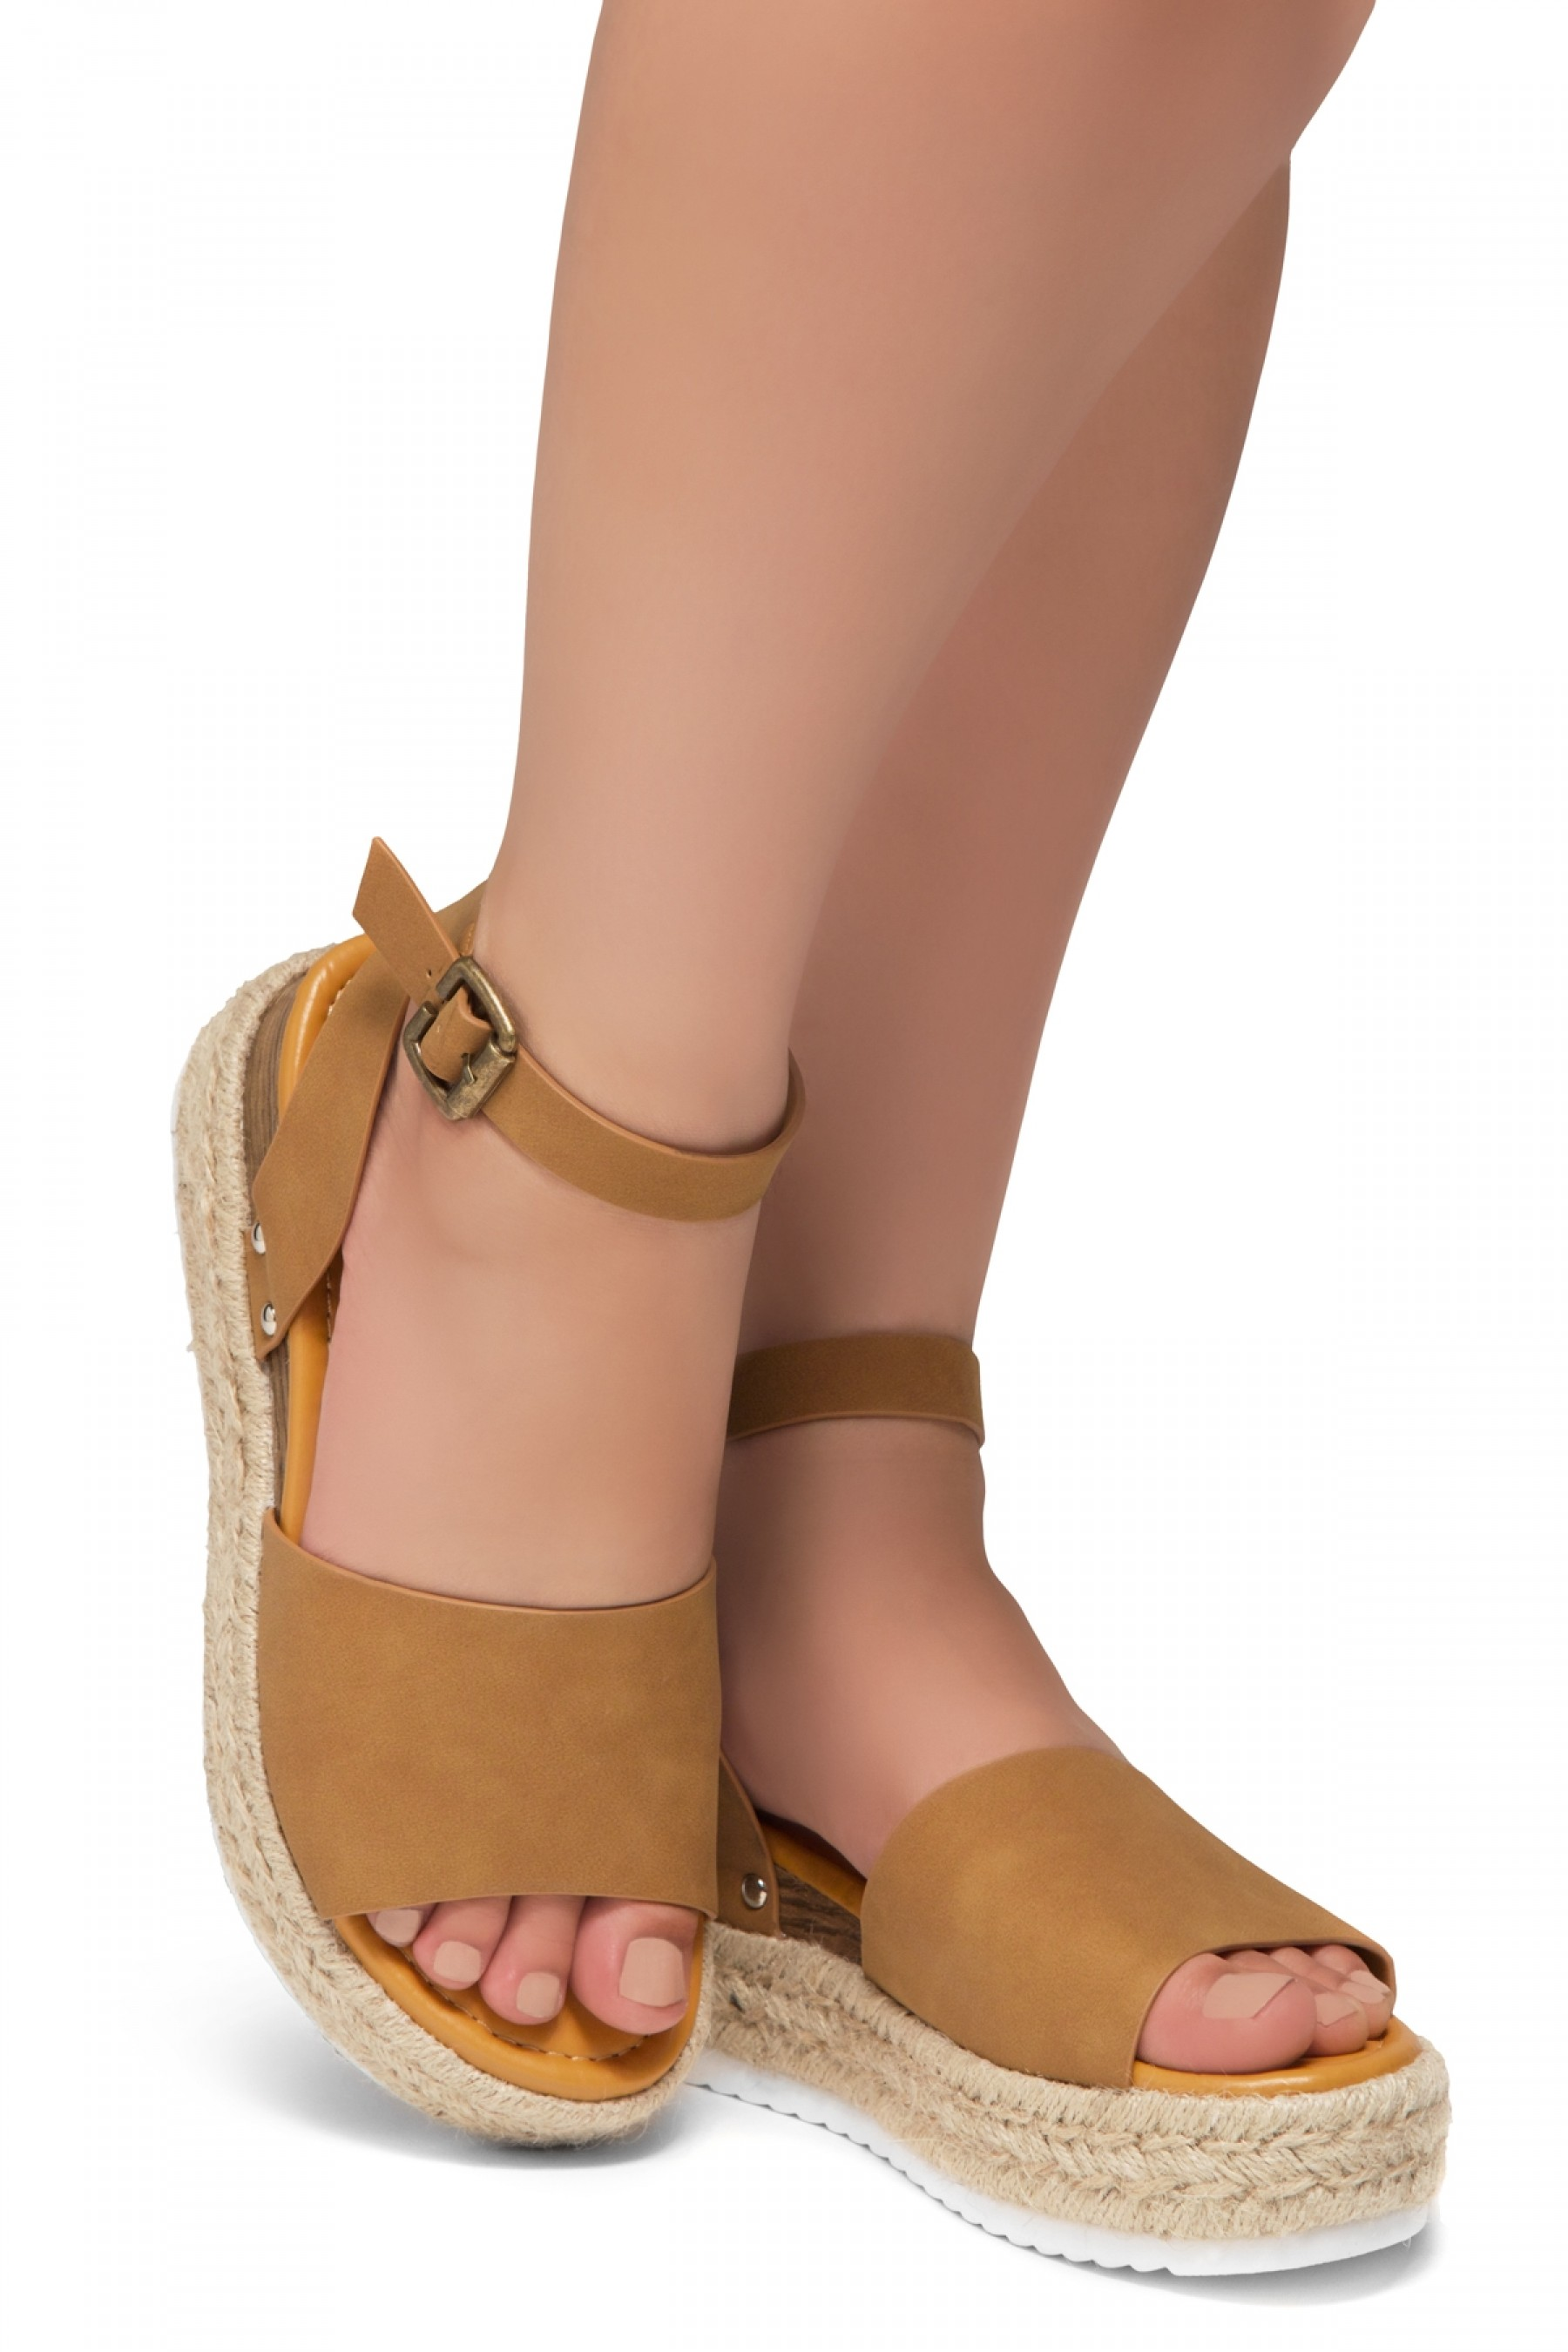 Shoe Land Legossa-Women's Open Toe Ankle Strap Platform Wedge Shoes Casual Espadrilles Trim Flatform Studded Wedge Sandals (1825/Tan)